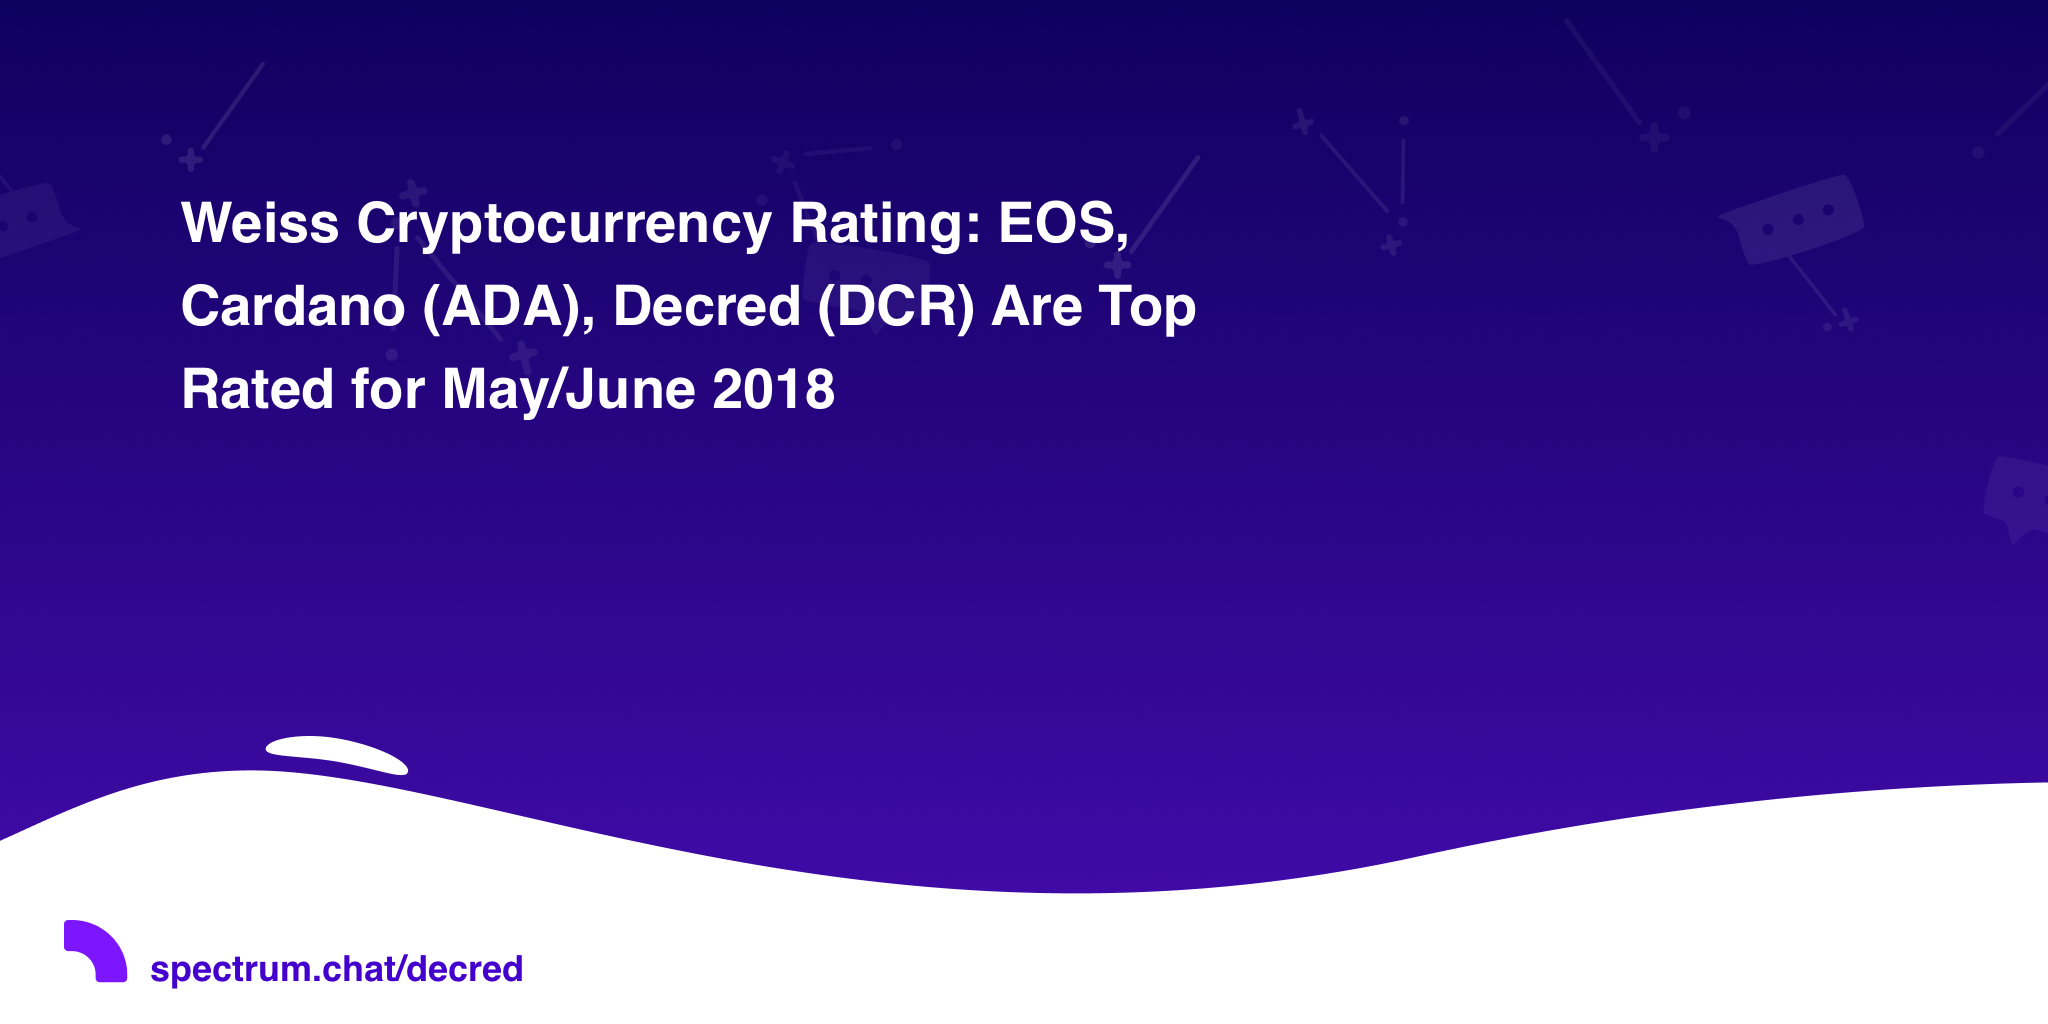 Weiss Cryptocurrency Rating: EOS, Cardano (ADA), Decred (DCR) Are